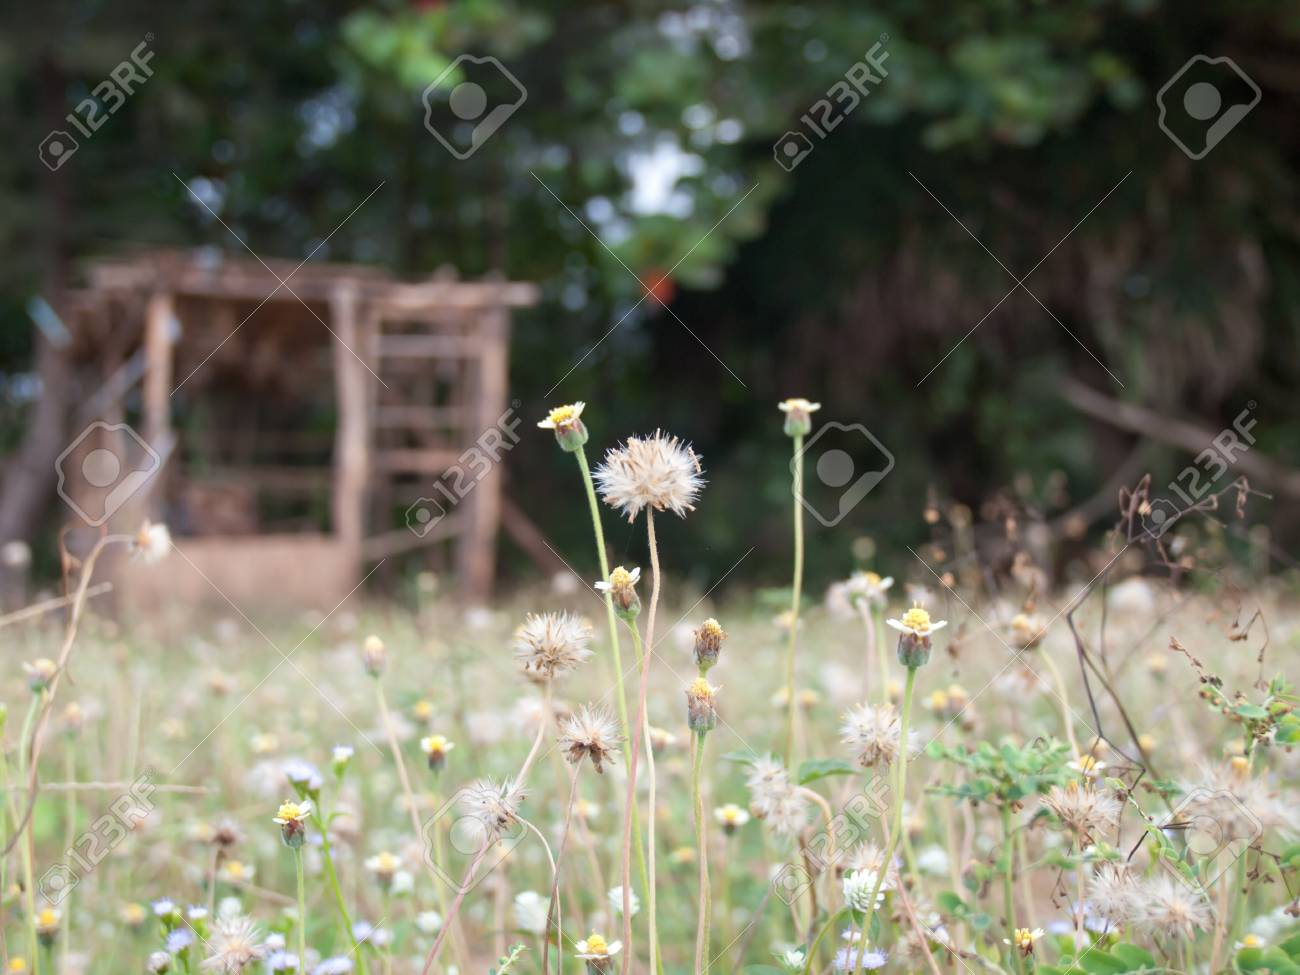 Tropical small grass flowers background Stock Photo - 18129940